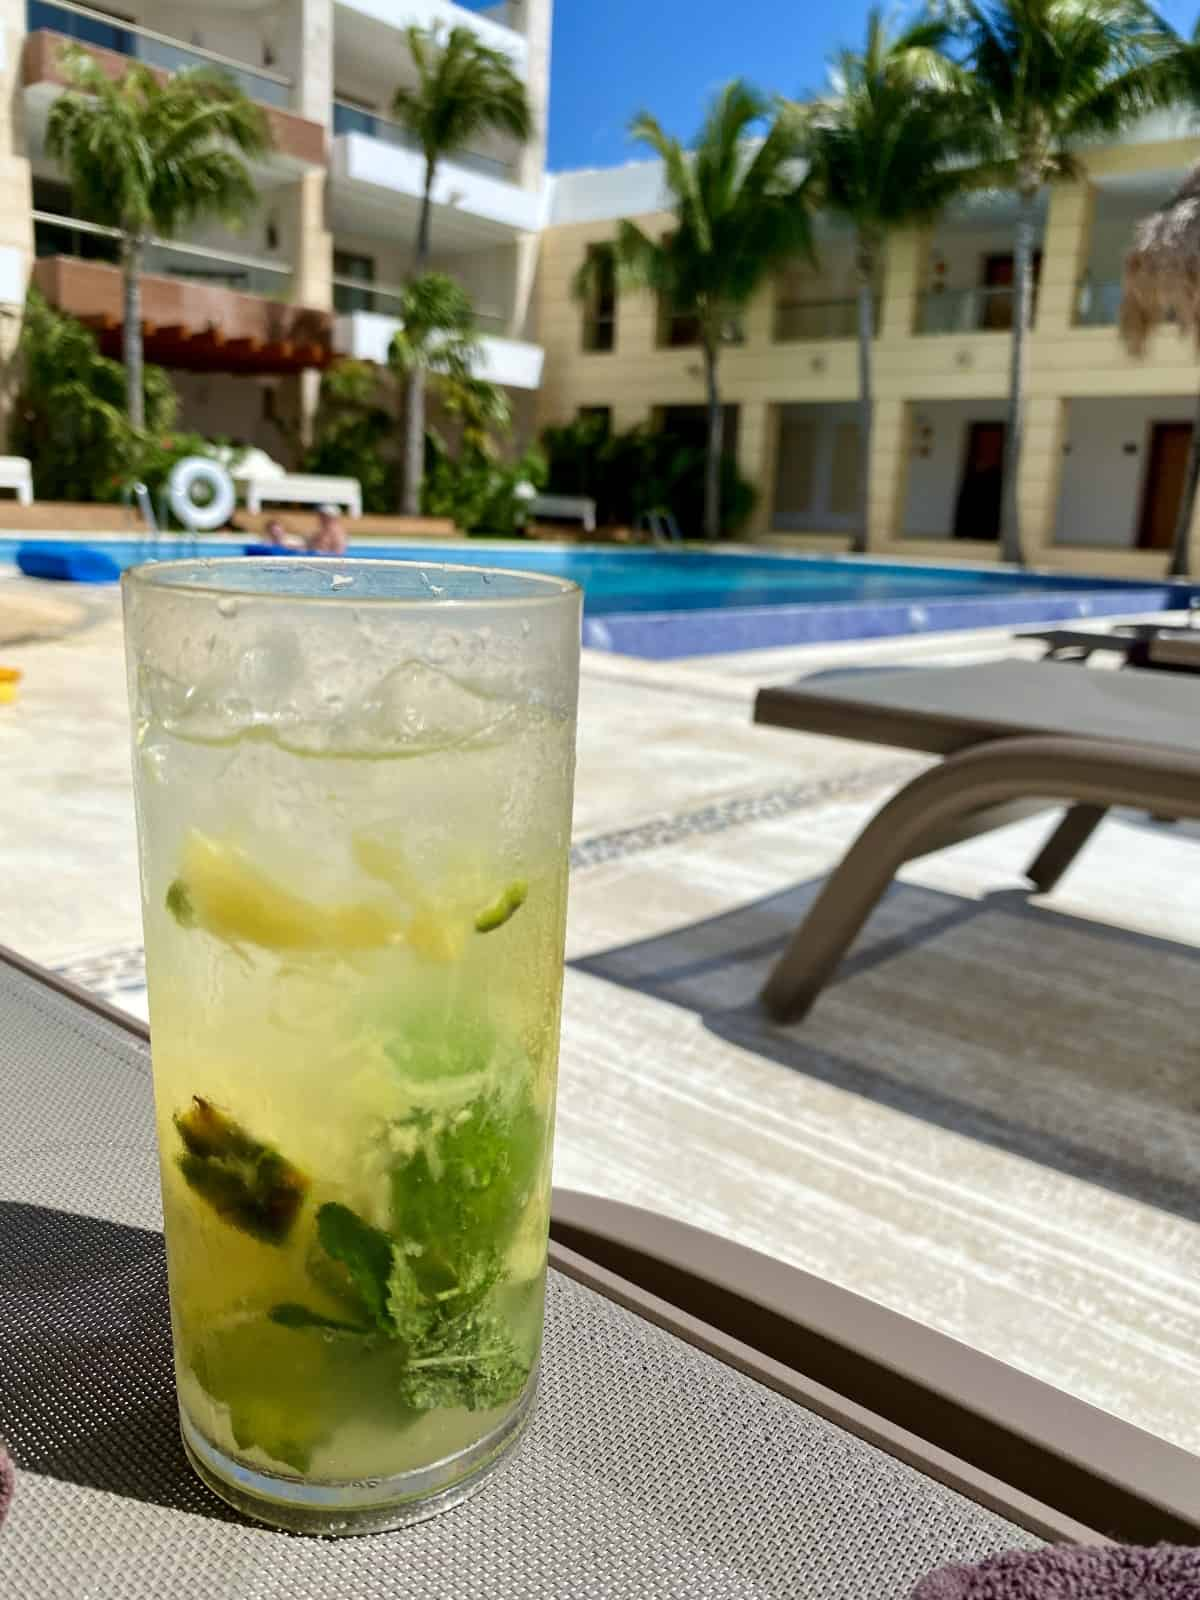 Detailed review of LeBlanc Cancun or Excellence Playa Mujeres - hanging out at Excellence Club pools